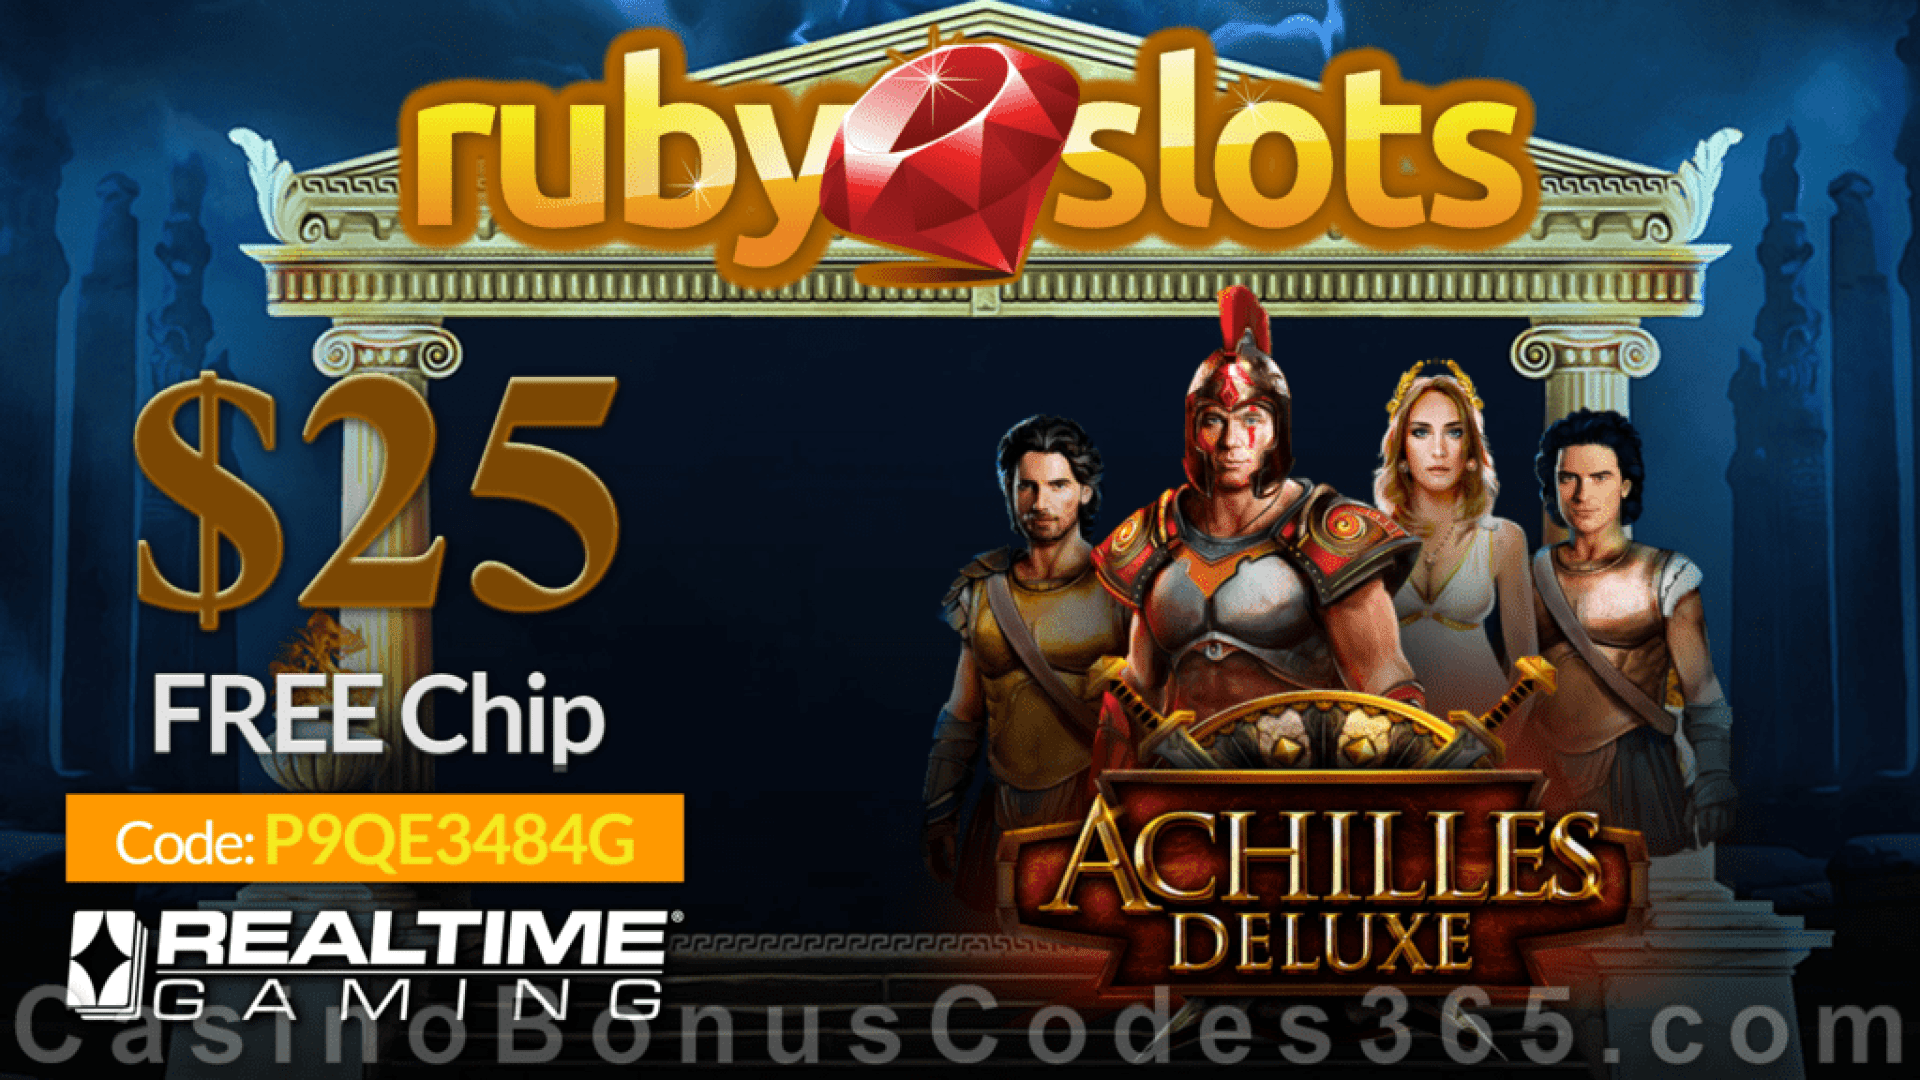 RubySlots $25 FREE Chip New RTG Game  Achilles Deluxe Special No Deposit Promo